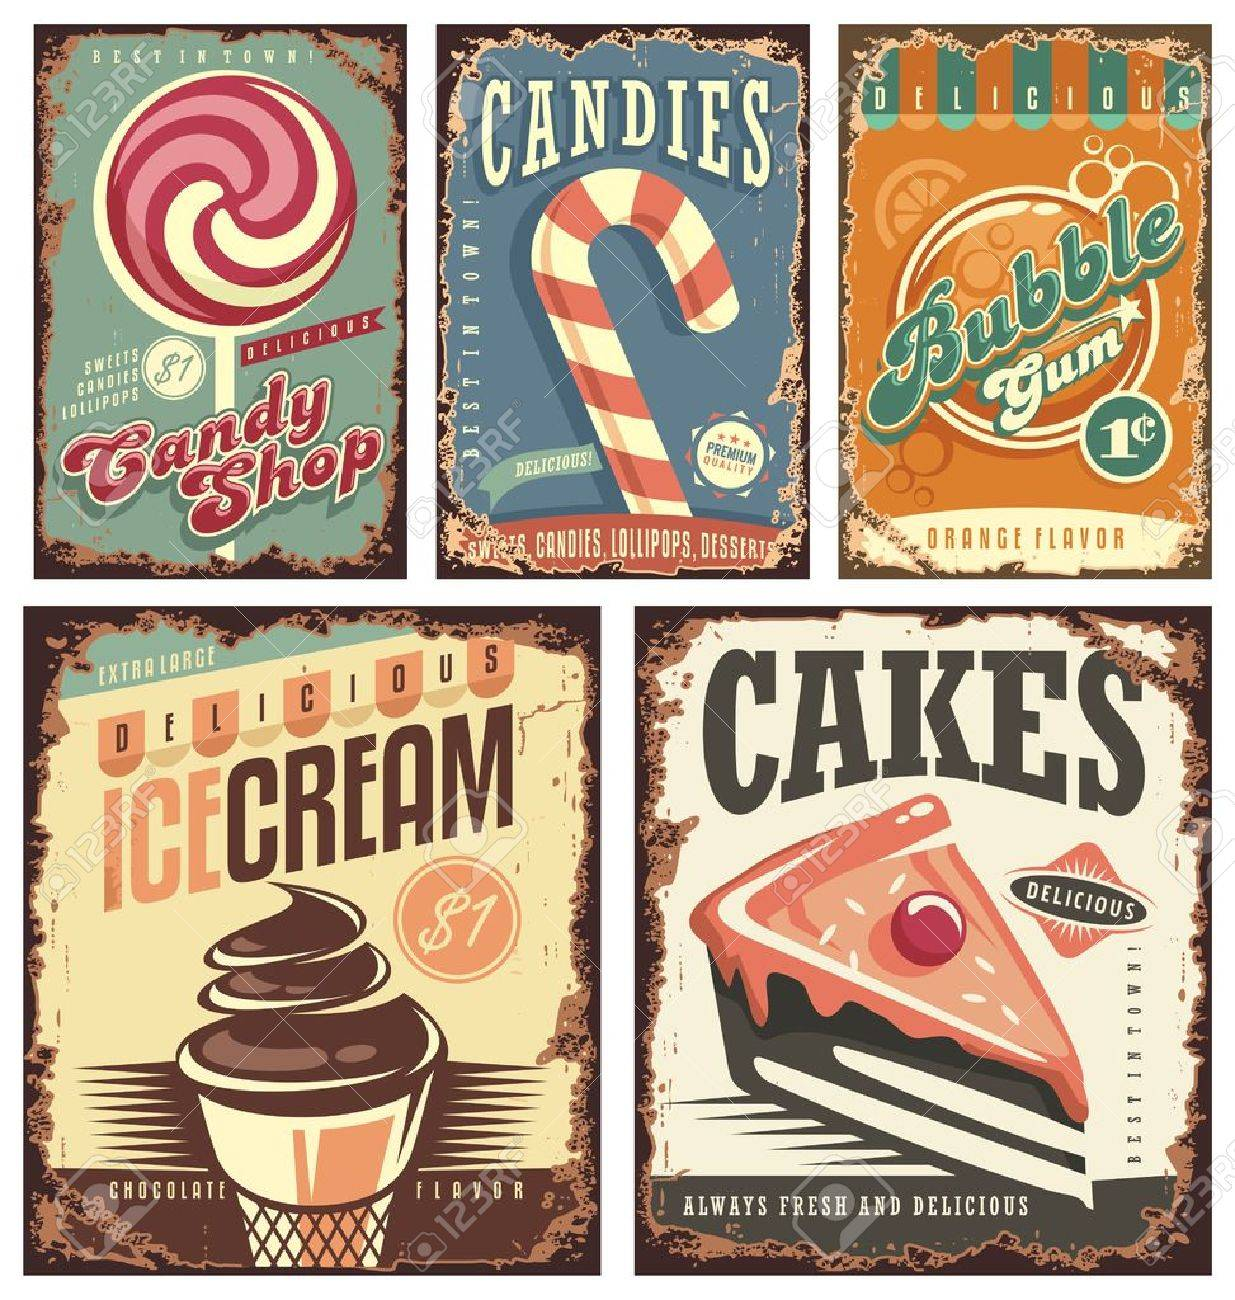 Vintage candy shop collection of tin signs - 53552533